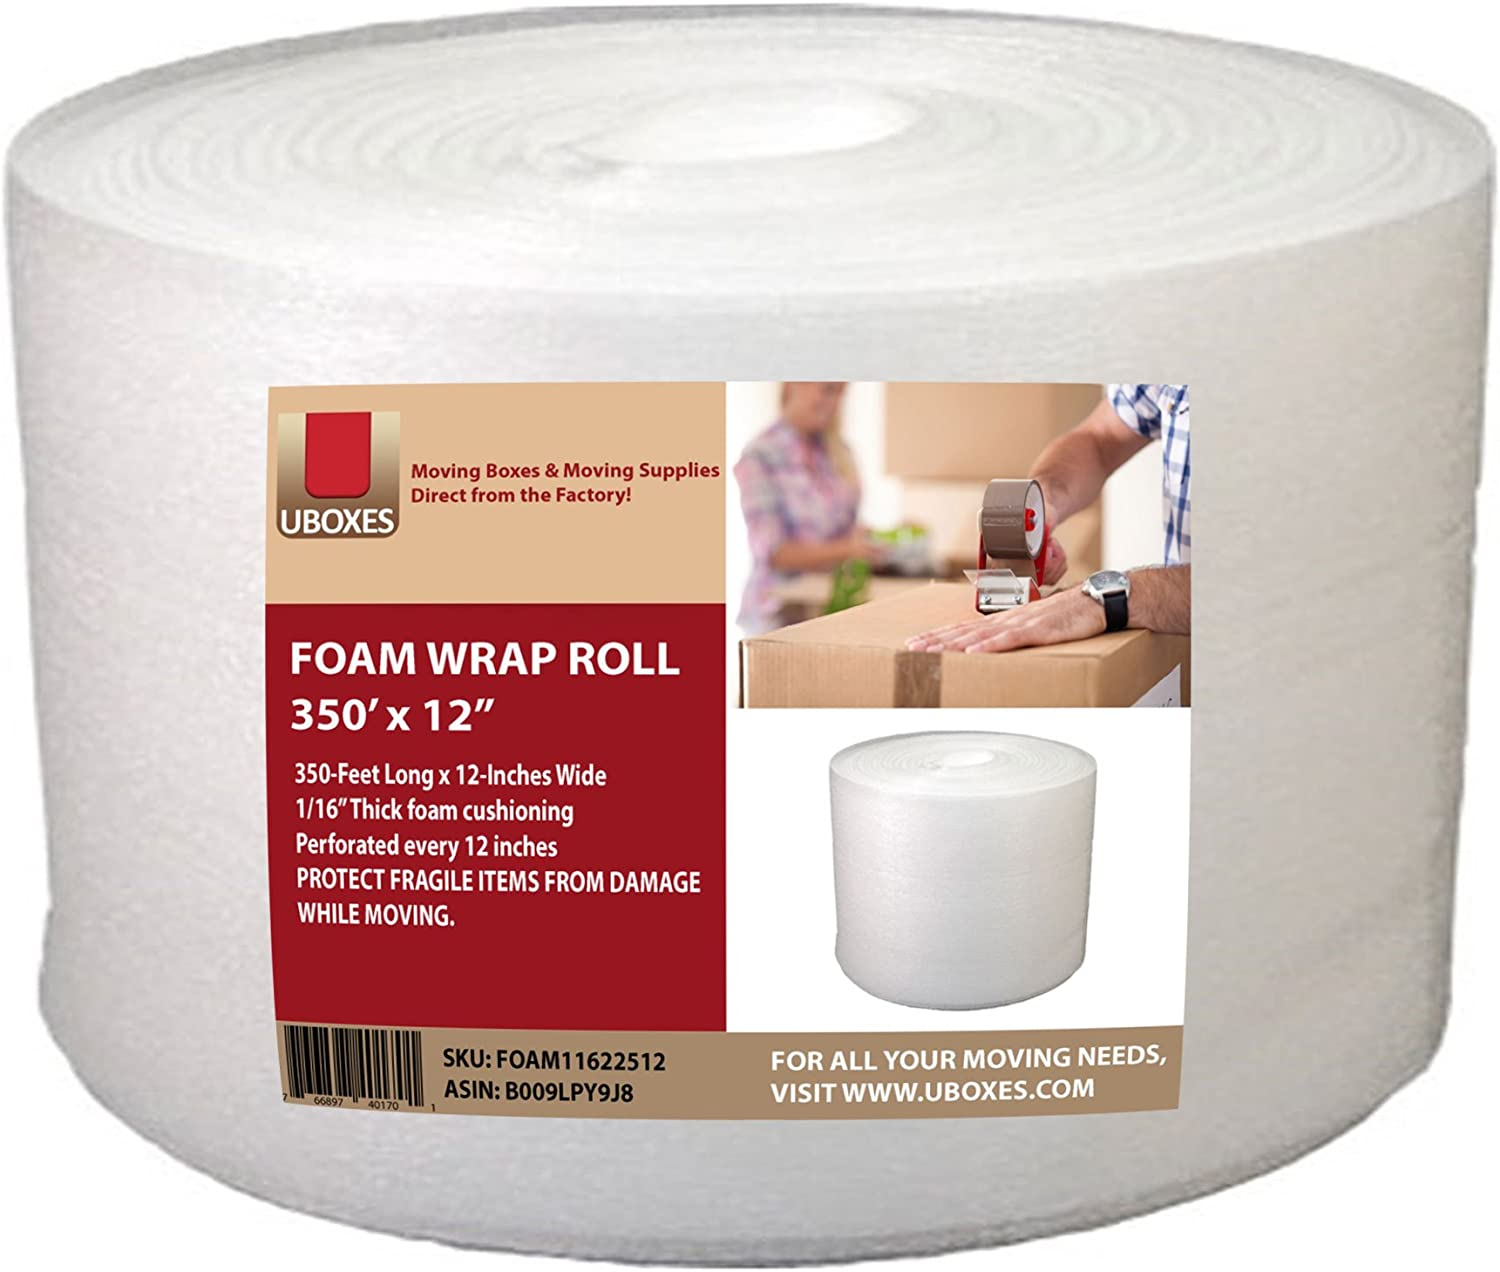 UBOXES Foam Wrap Max 81% OFF Roll 320' x 12